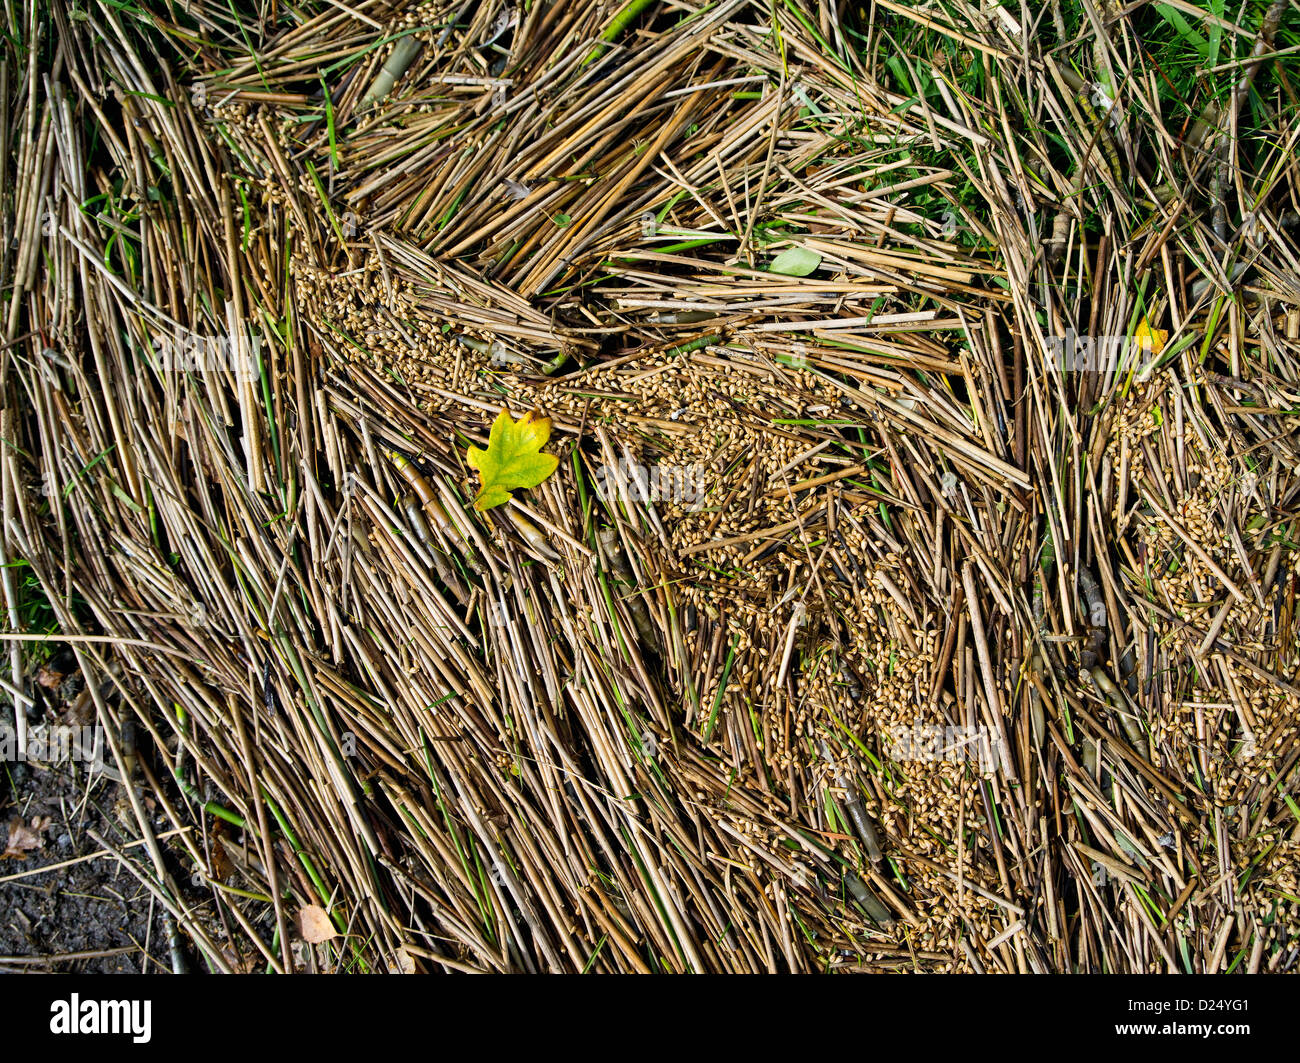 Reeds and other flotsam on the watermark of recent flooding Stock Photo